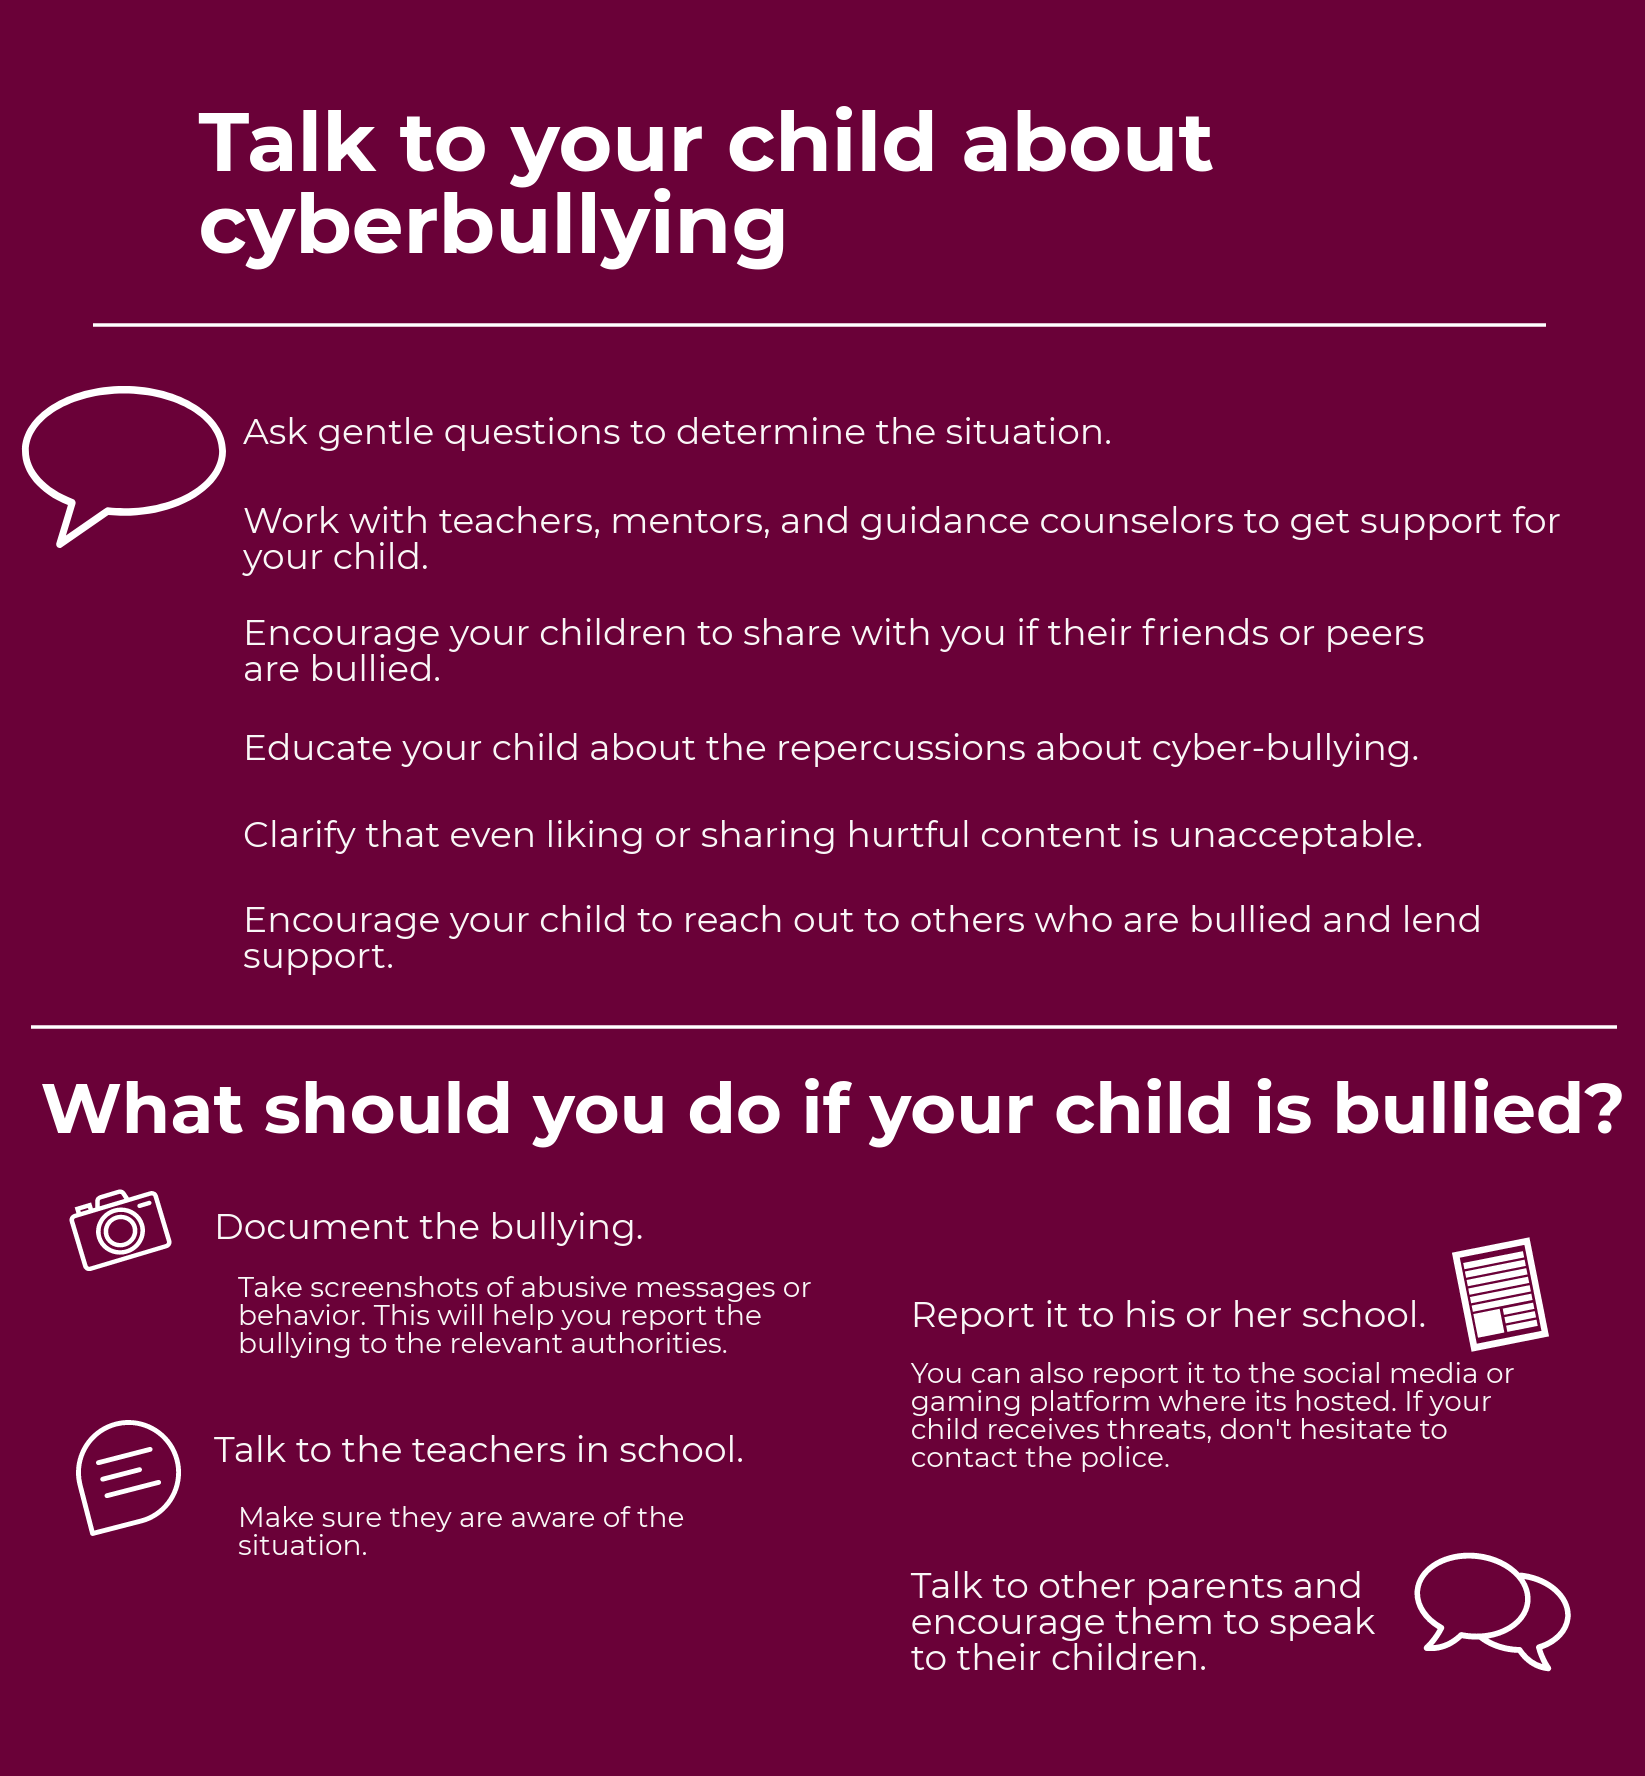 parent-guide-cy_27065844-e1514206275899.png